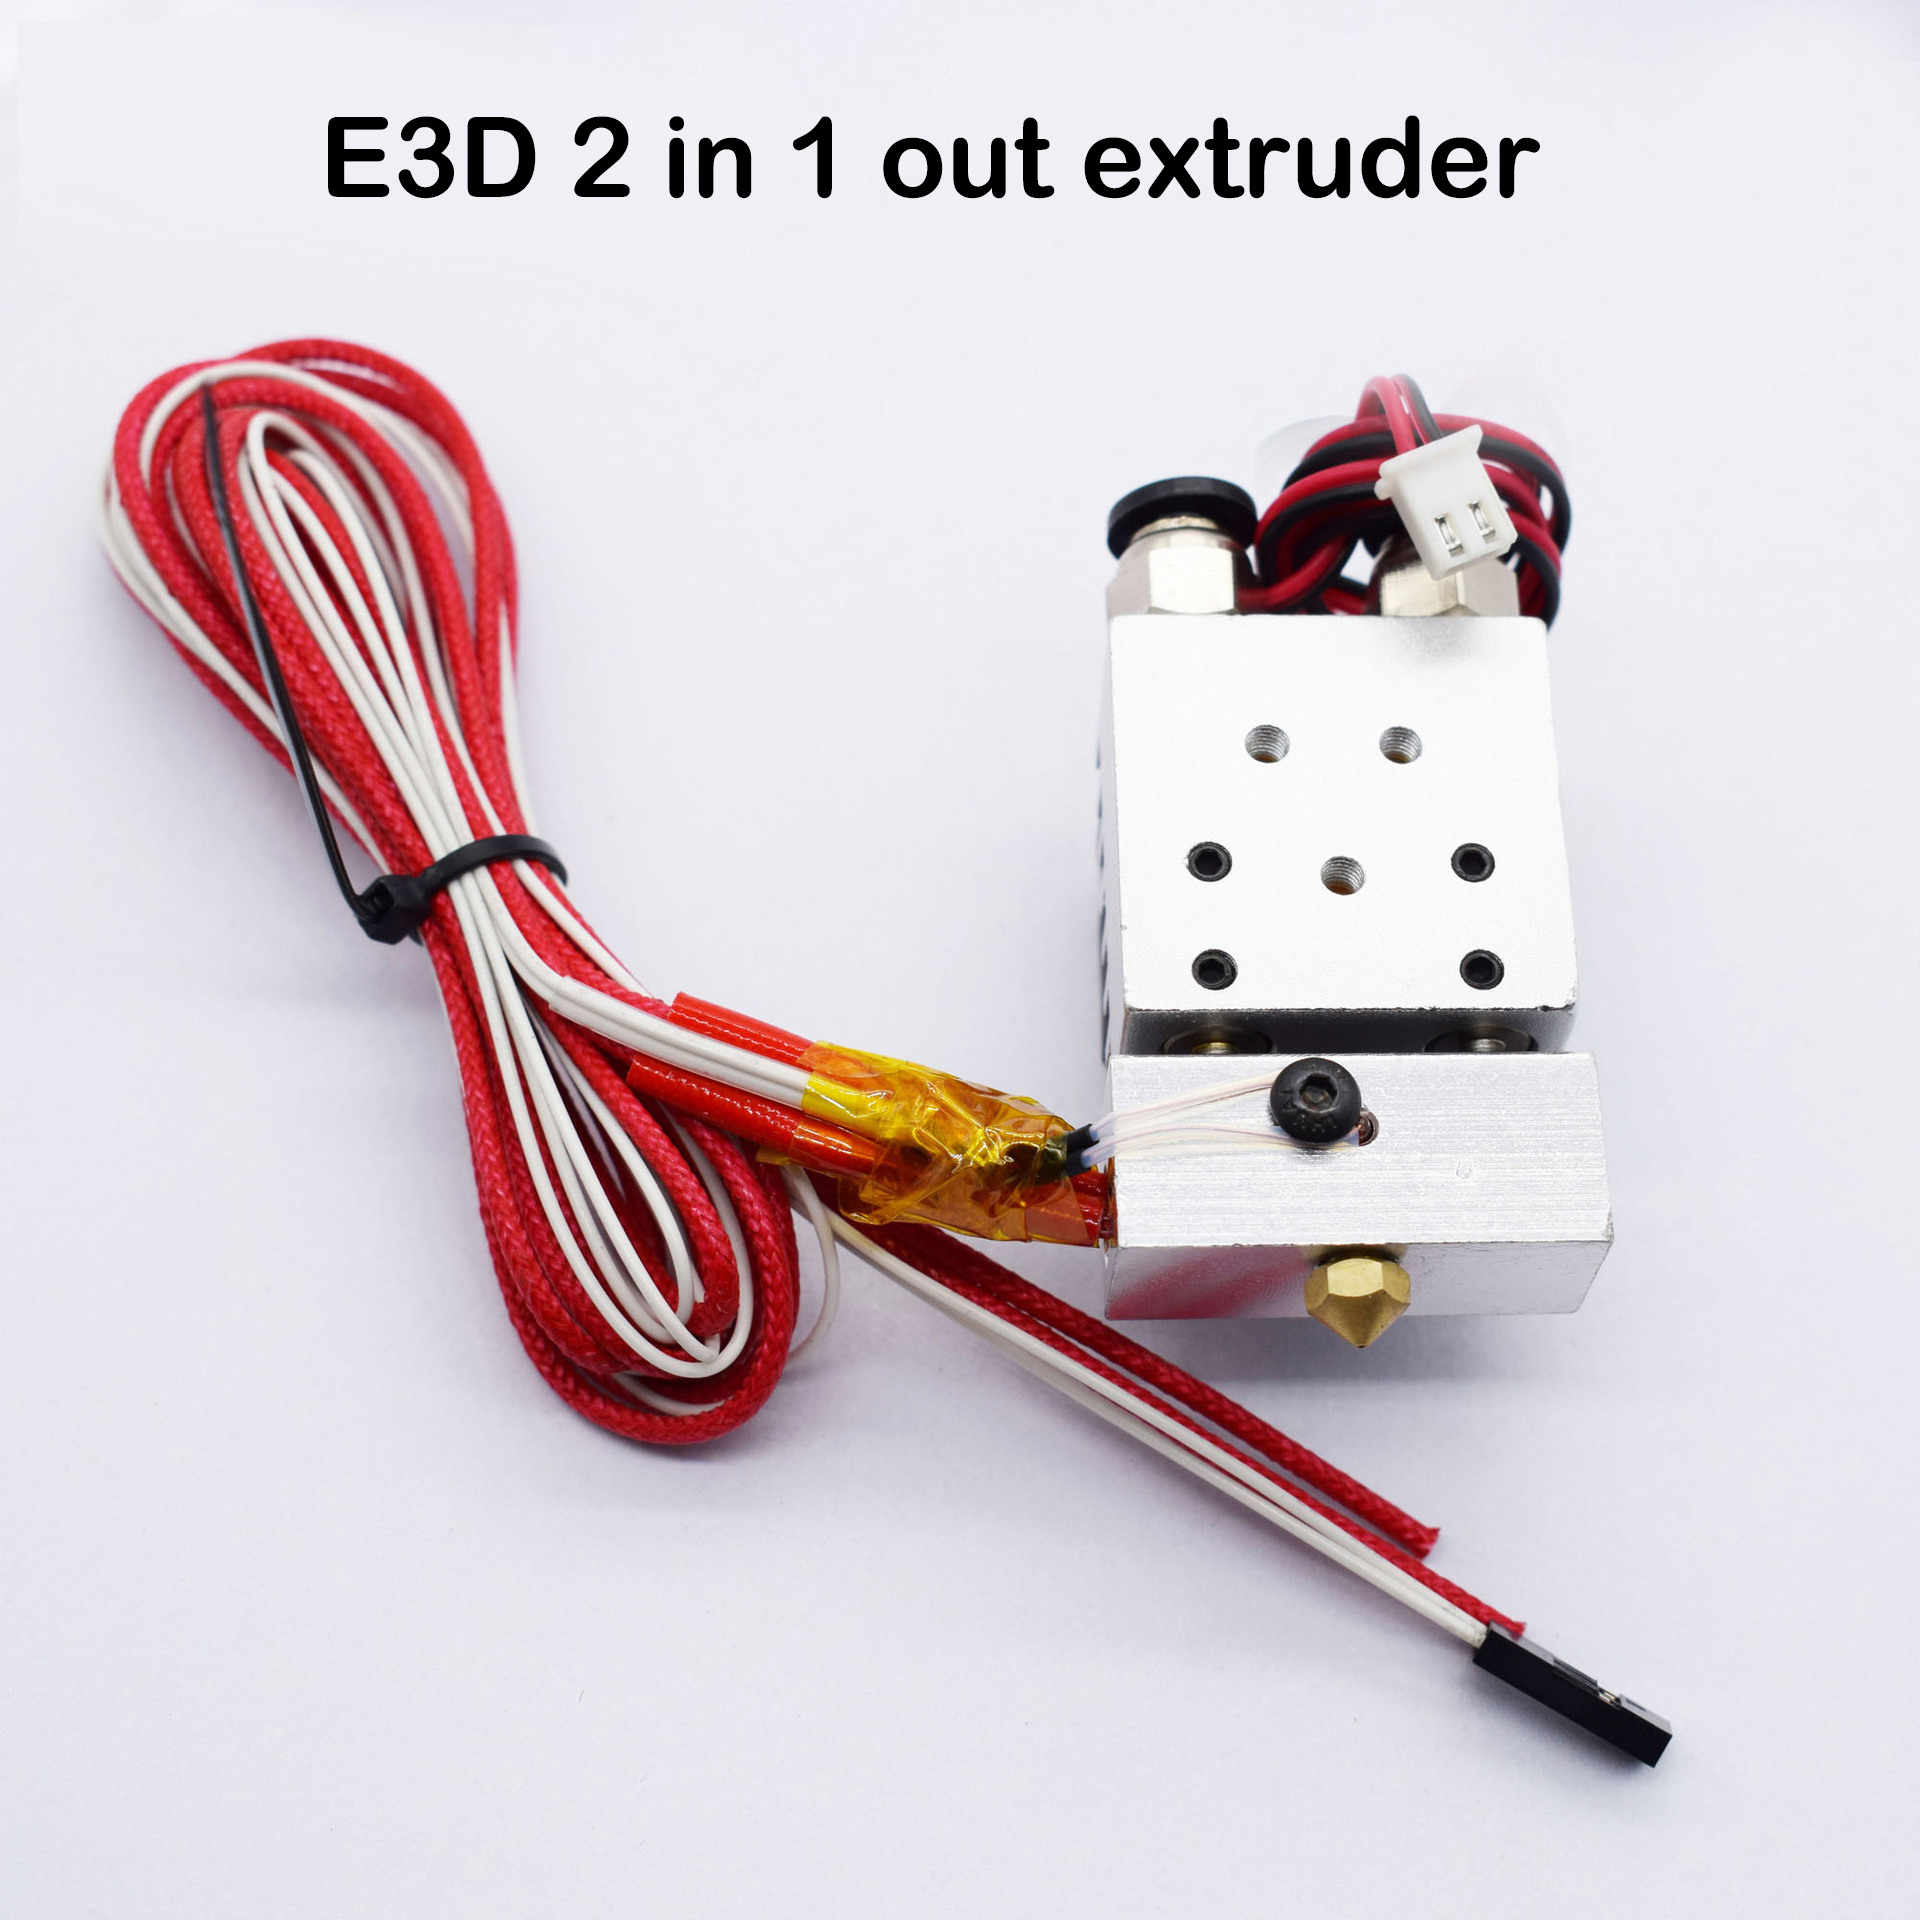 2 in 1 out extruder remote 0.4 nozzles 1.75mm 12V/24V single head double color printing for 3D printer e3d extruder parts biqu new 3d printer part 2 in 1 out extruder with single cooling fan for dual color cyclops 12v 24v heater for selection